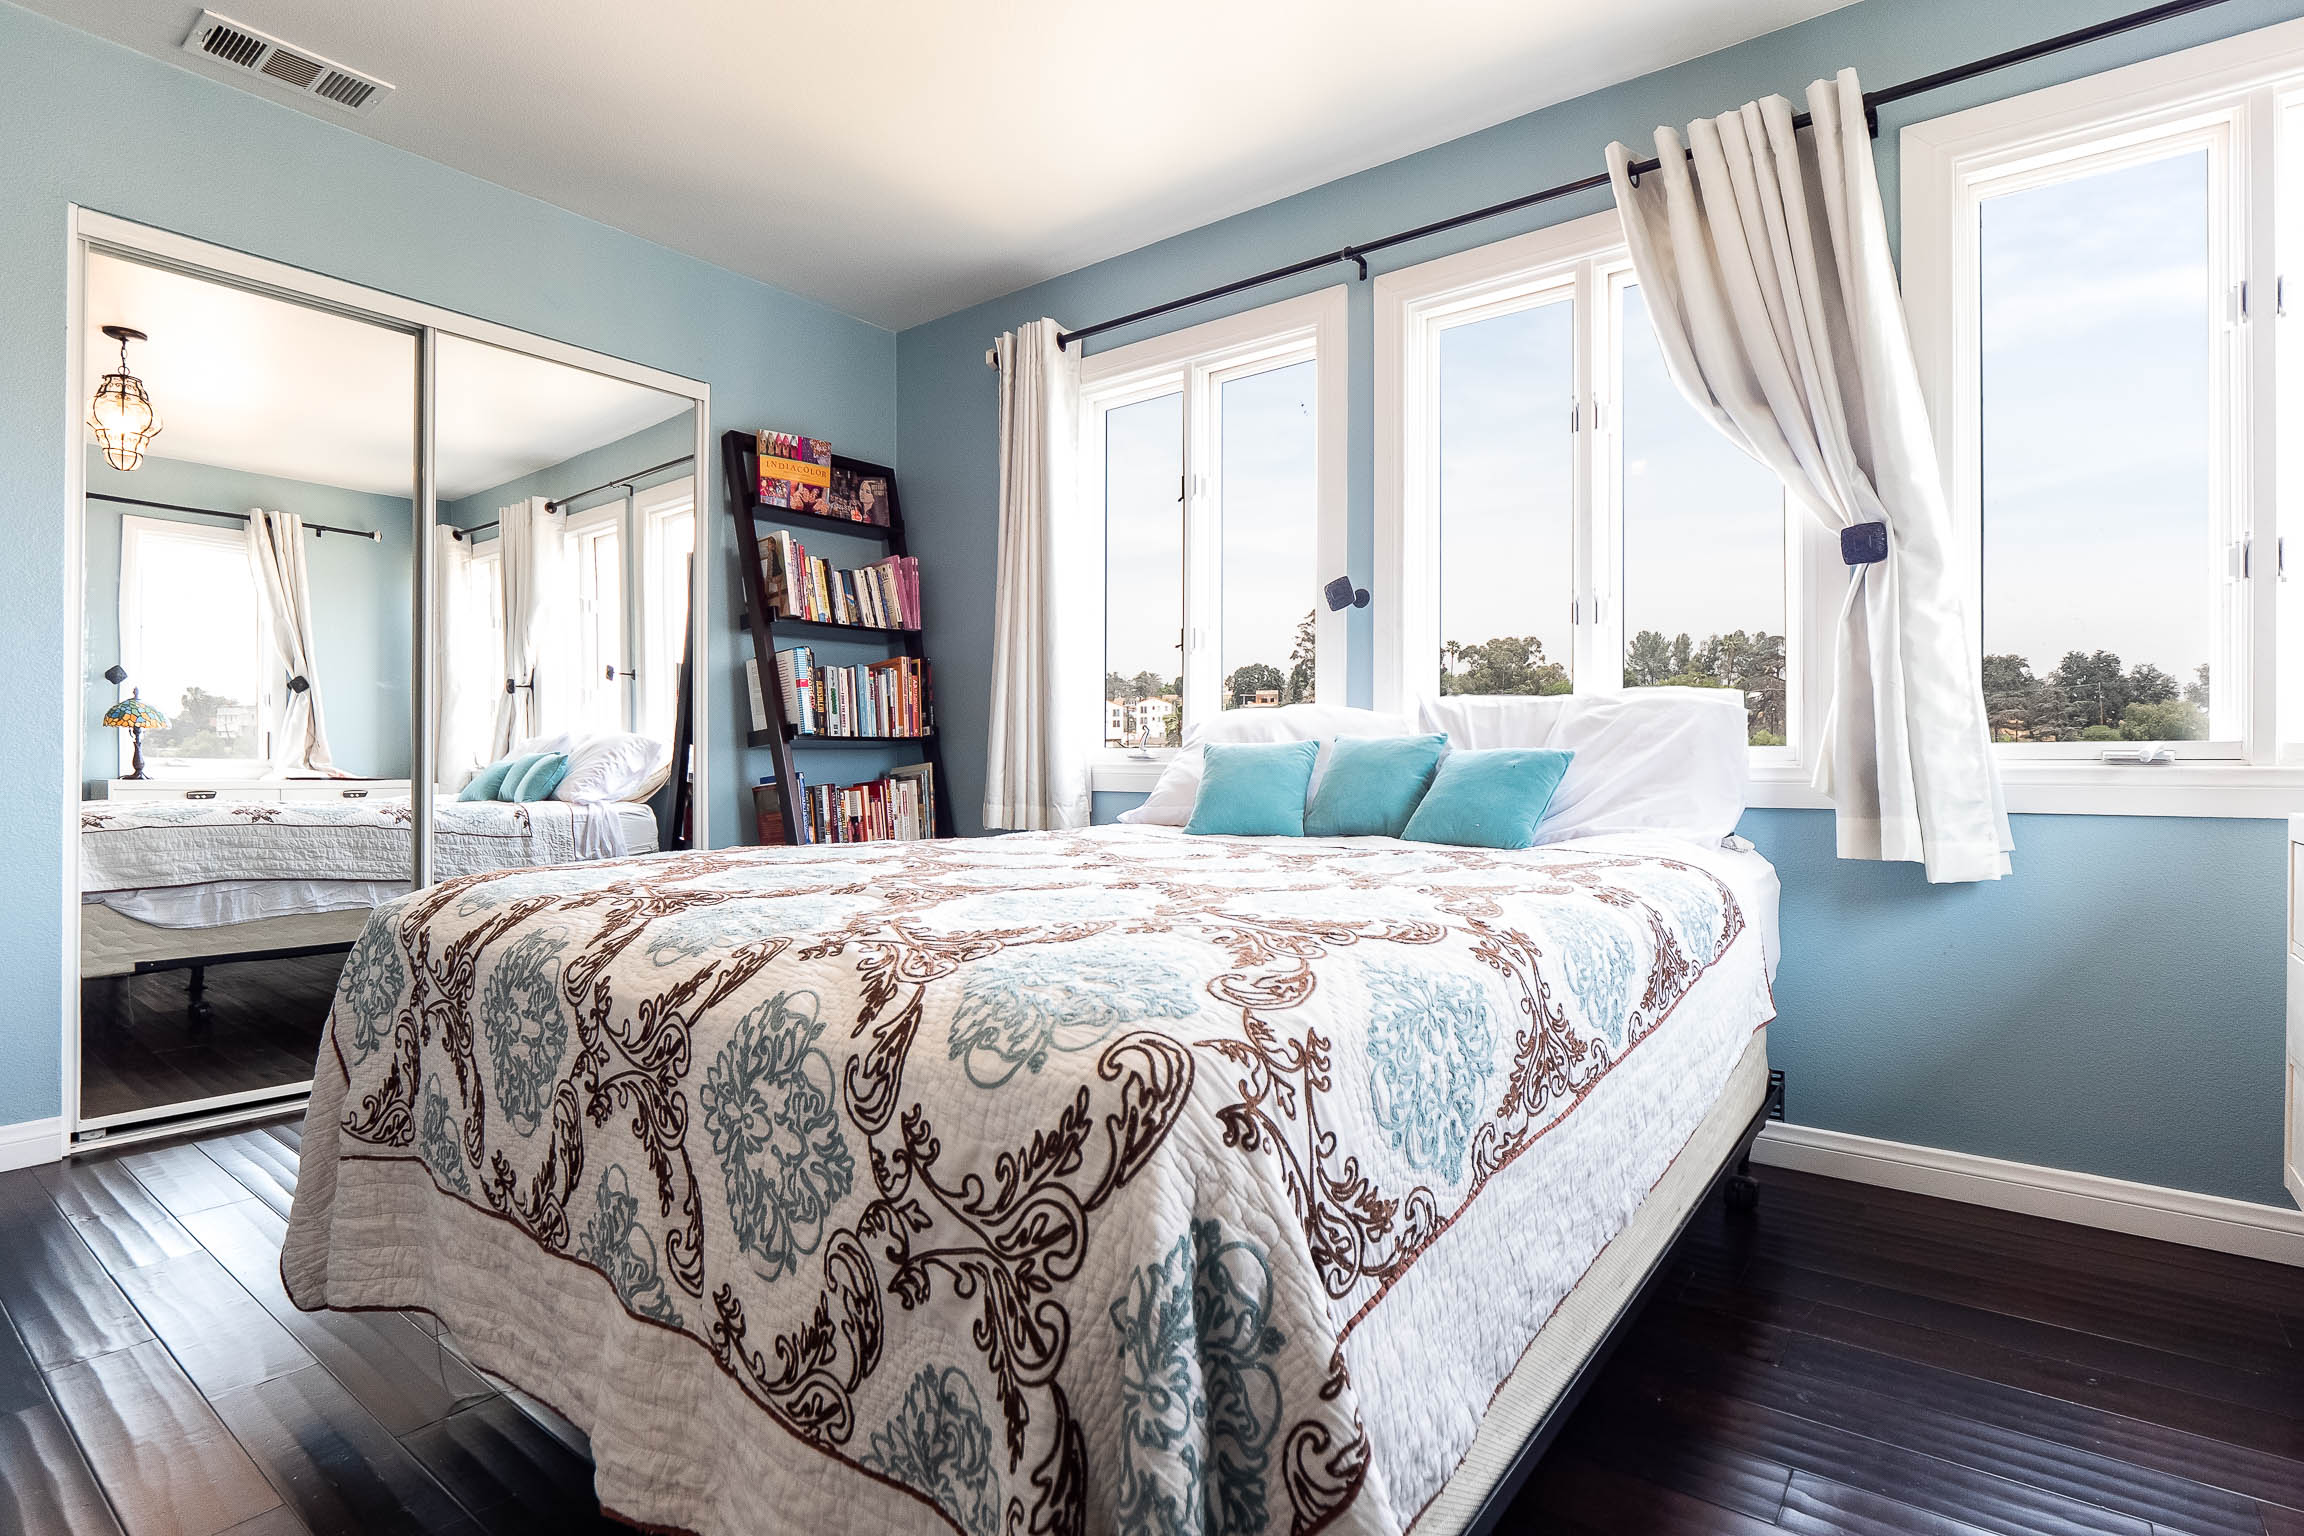 Super Chic Echo Park Town House   Furnished or Unfurnished Option Available   Incredibly Playful & Insta-Worthy Design   One Block to Sunset   Near Dodger Stadium